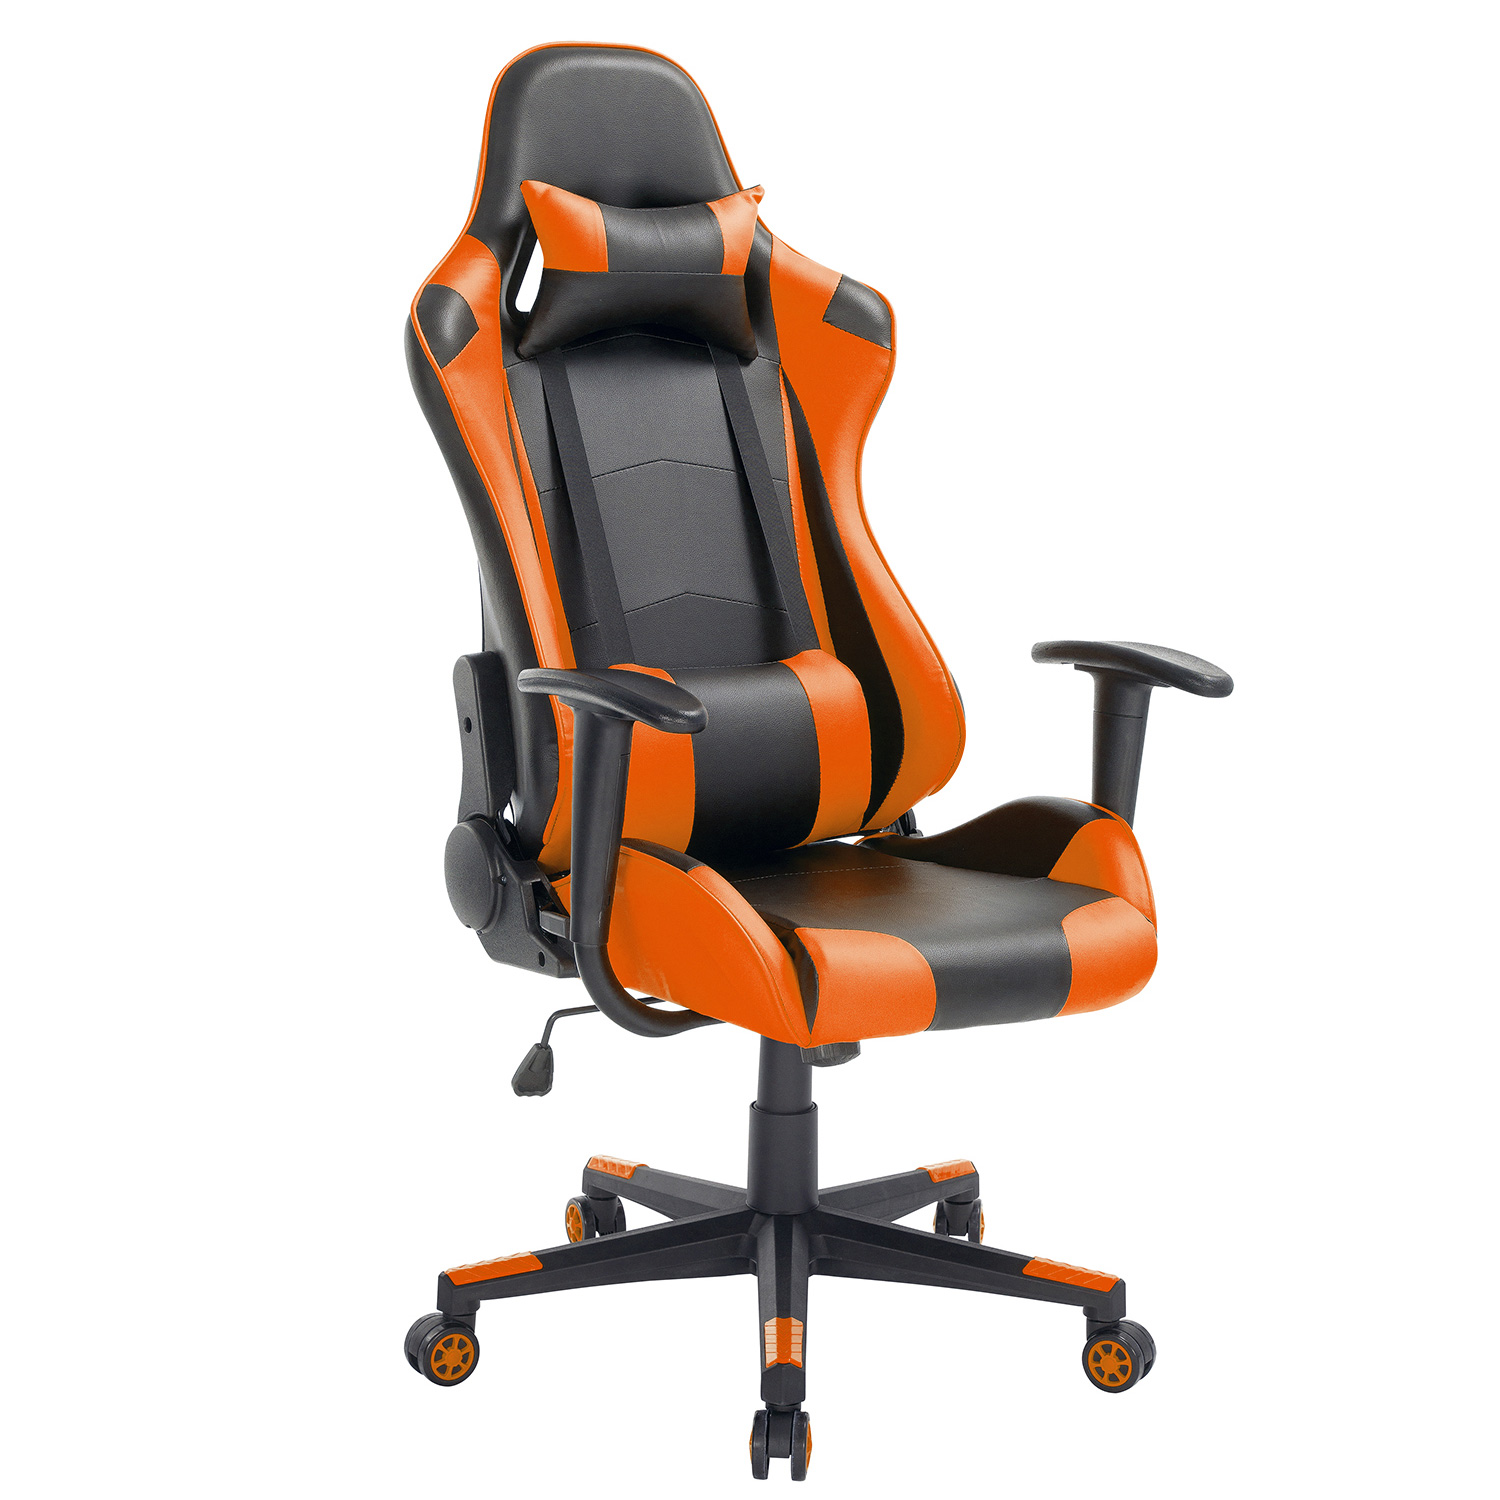 High-Back Swivel Gaming Chair Black & Orange With Lumbar Support & Headrest | Racing Style Ergonomic Office Desk Chair by Modern-depo